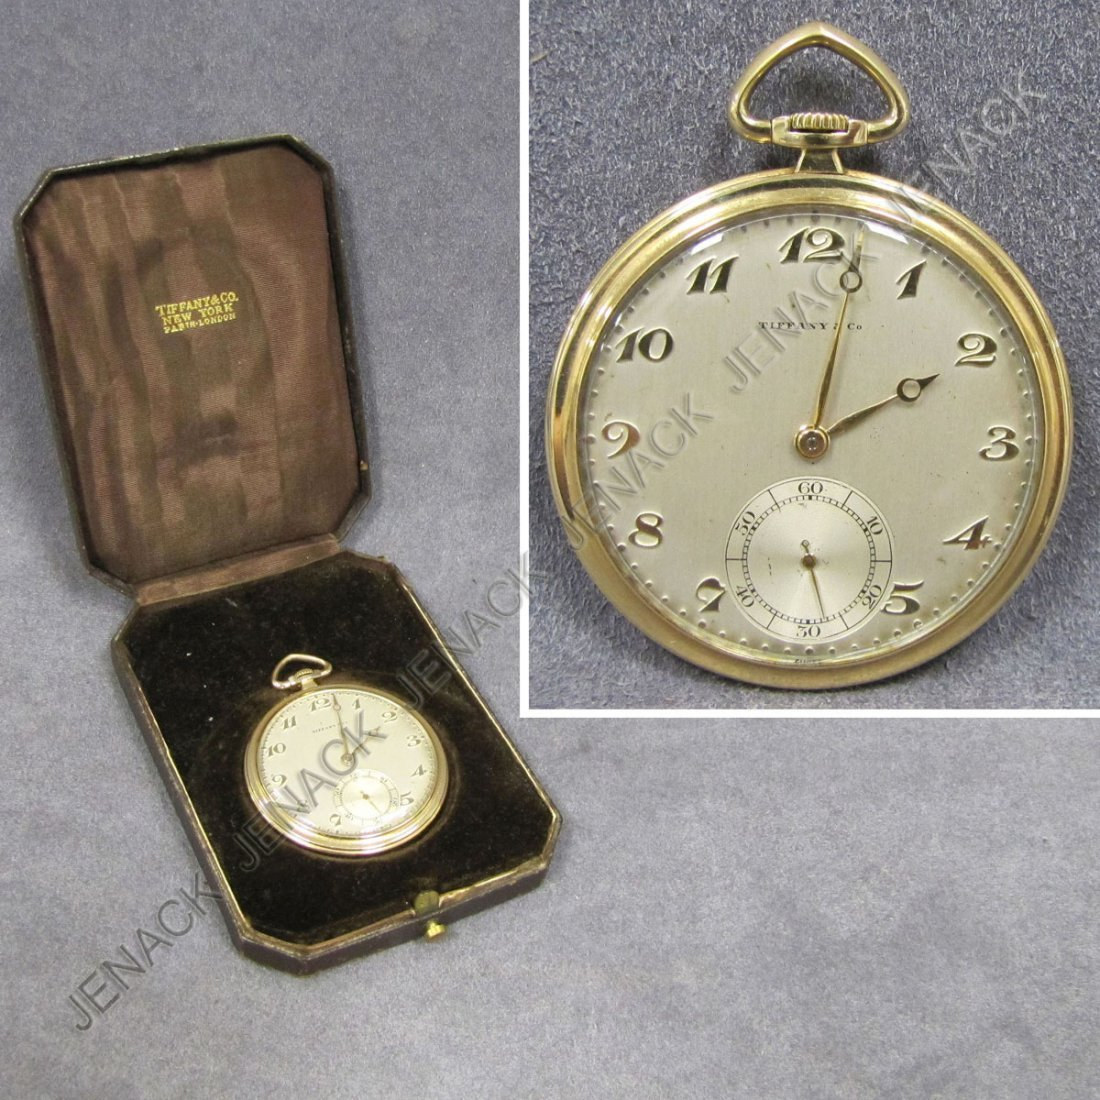 12: VINTAGE TIFFANY & CO./IWC 14K 15-JEWEL POCKET WATCH